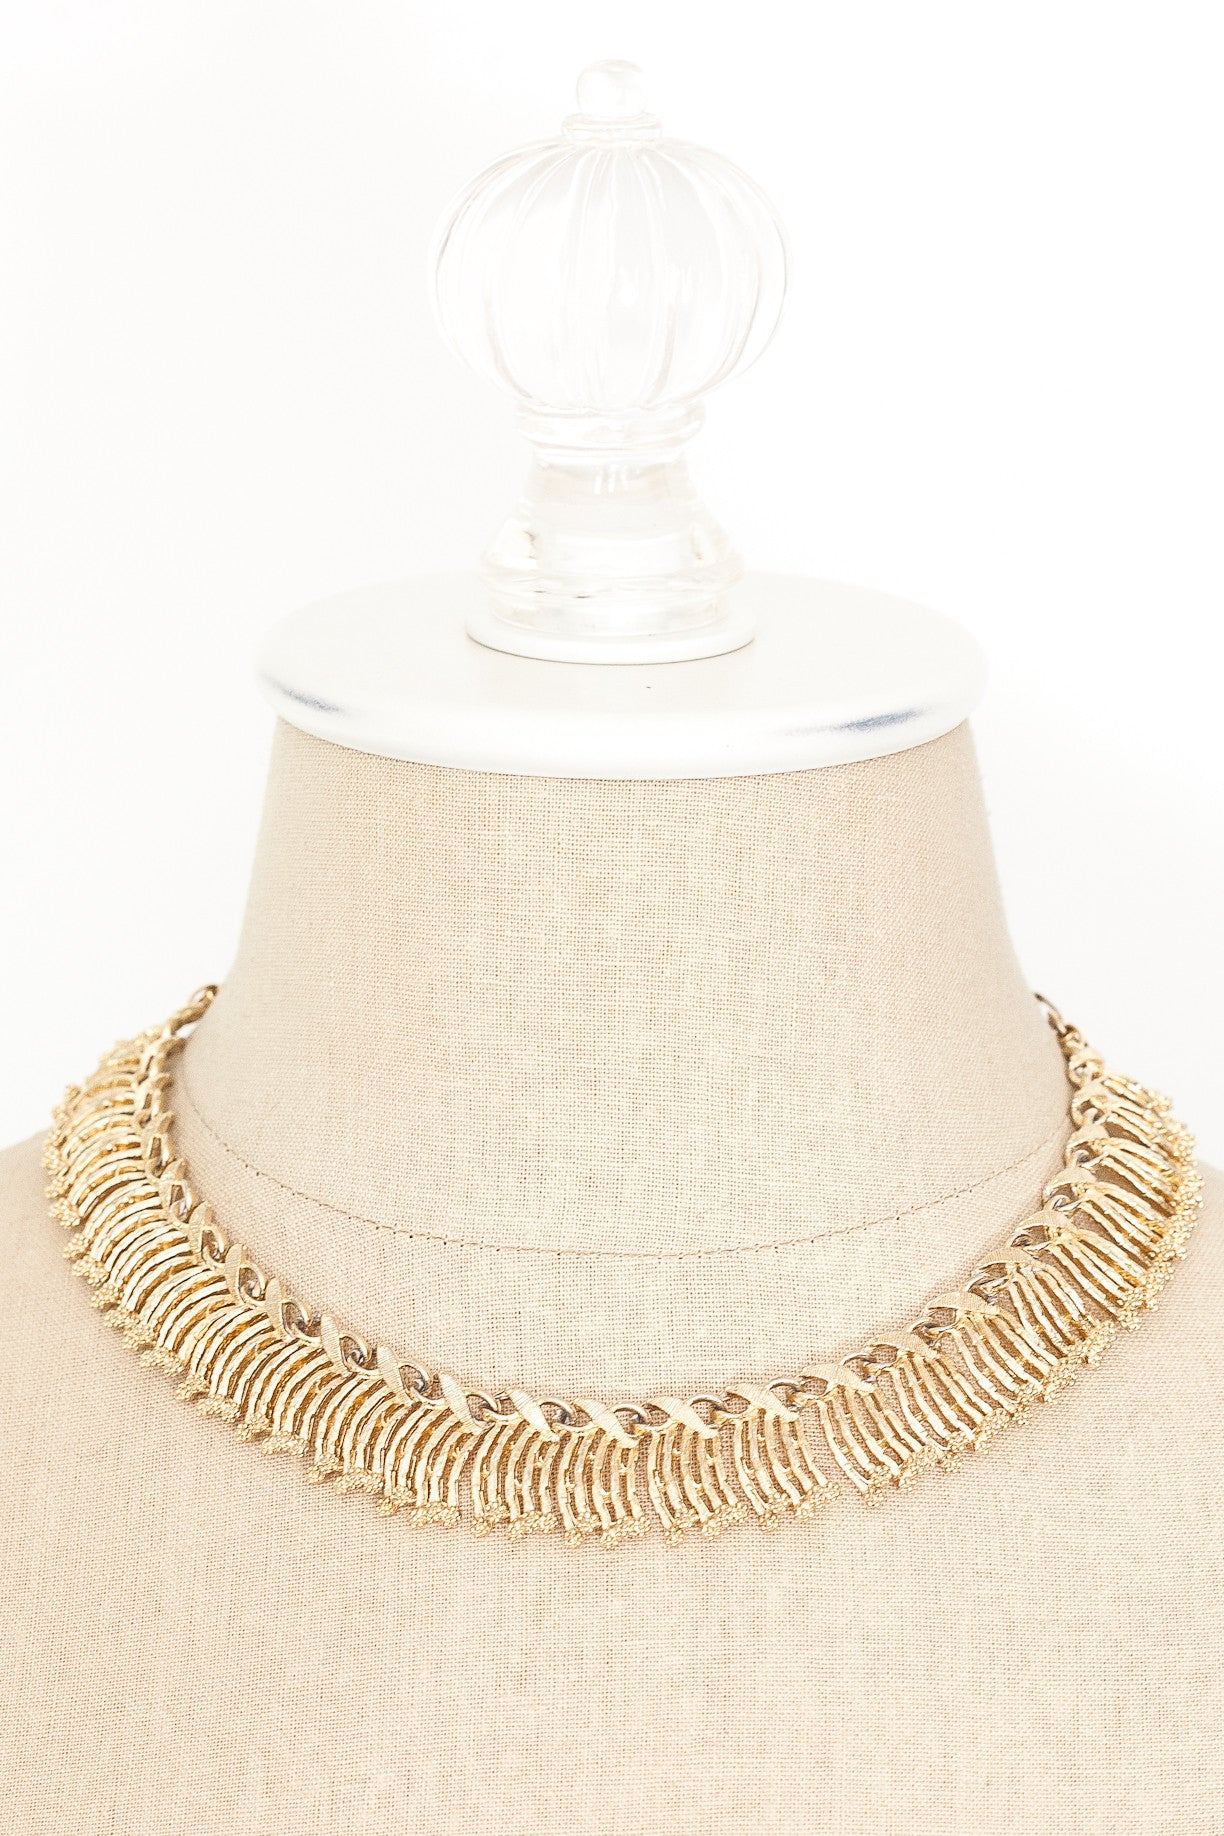 60's__Lisner__Fringe Bib Necklace